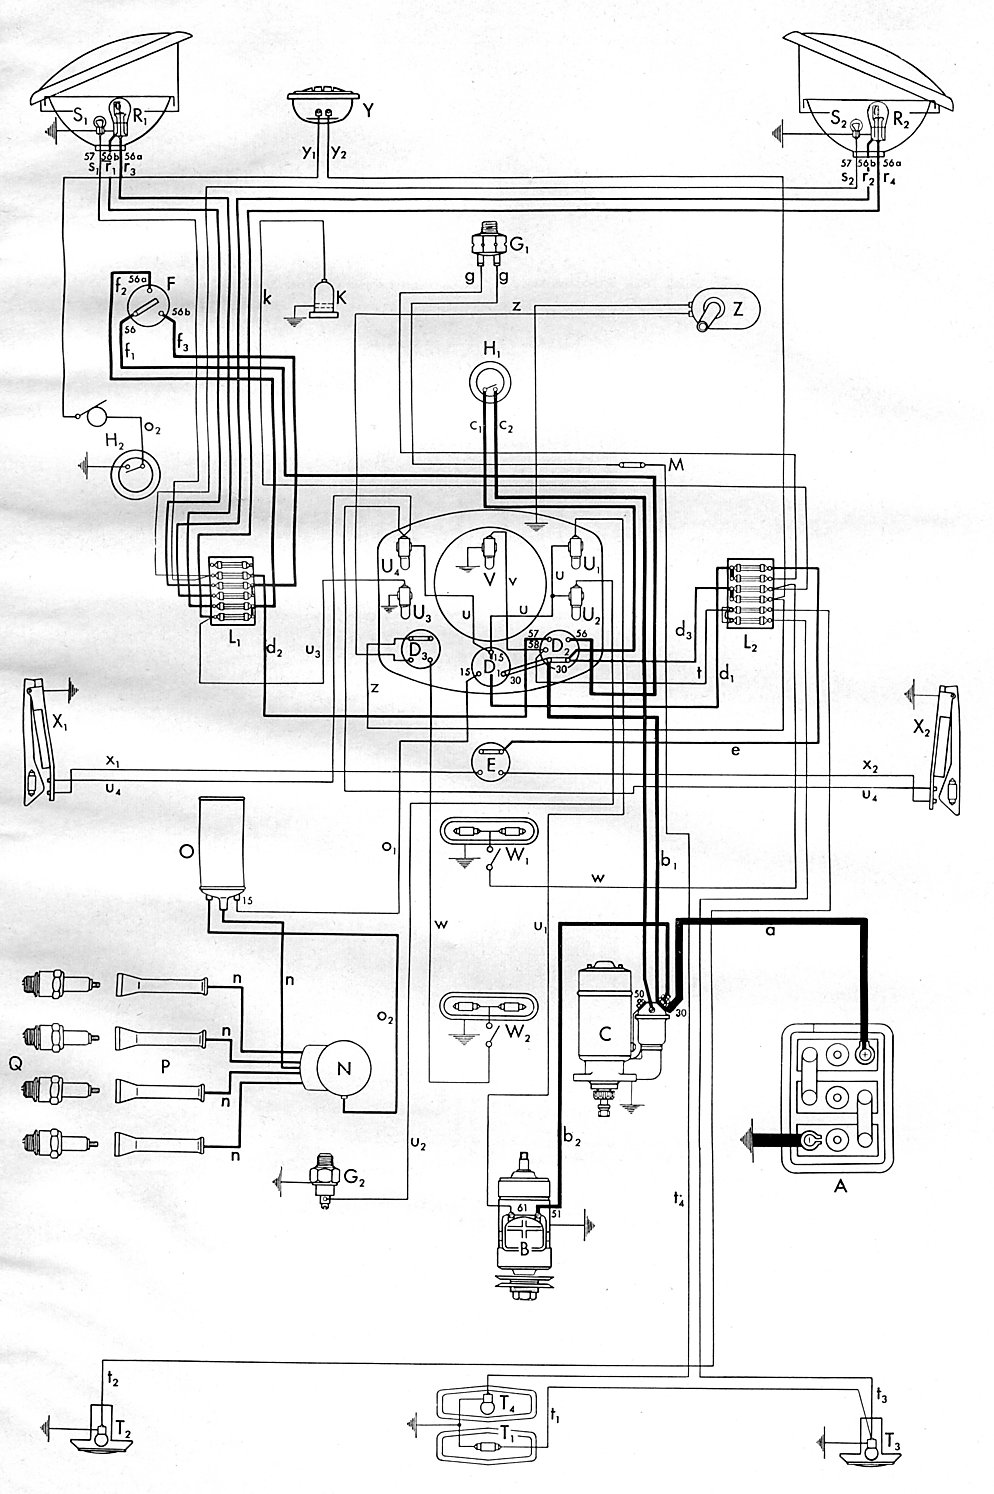 medium resolution of 1953 bus wiring diagram thegoldenbug com rh thegoldenbug com wiring diagrams for 2007 volkswagen volkswagen dune buggy wiring